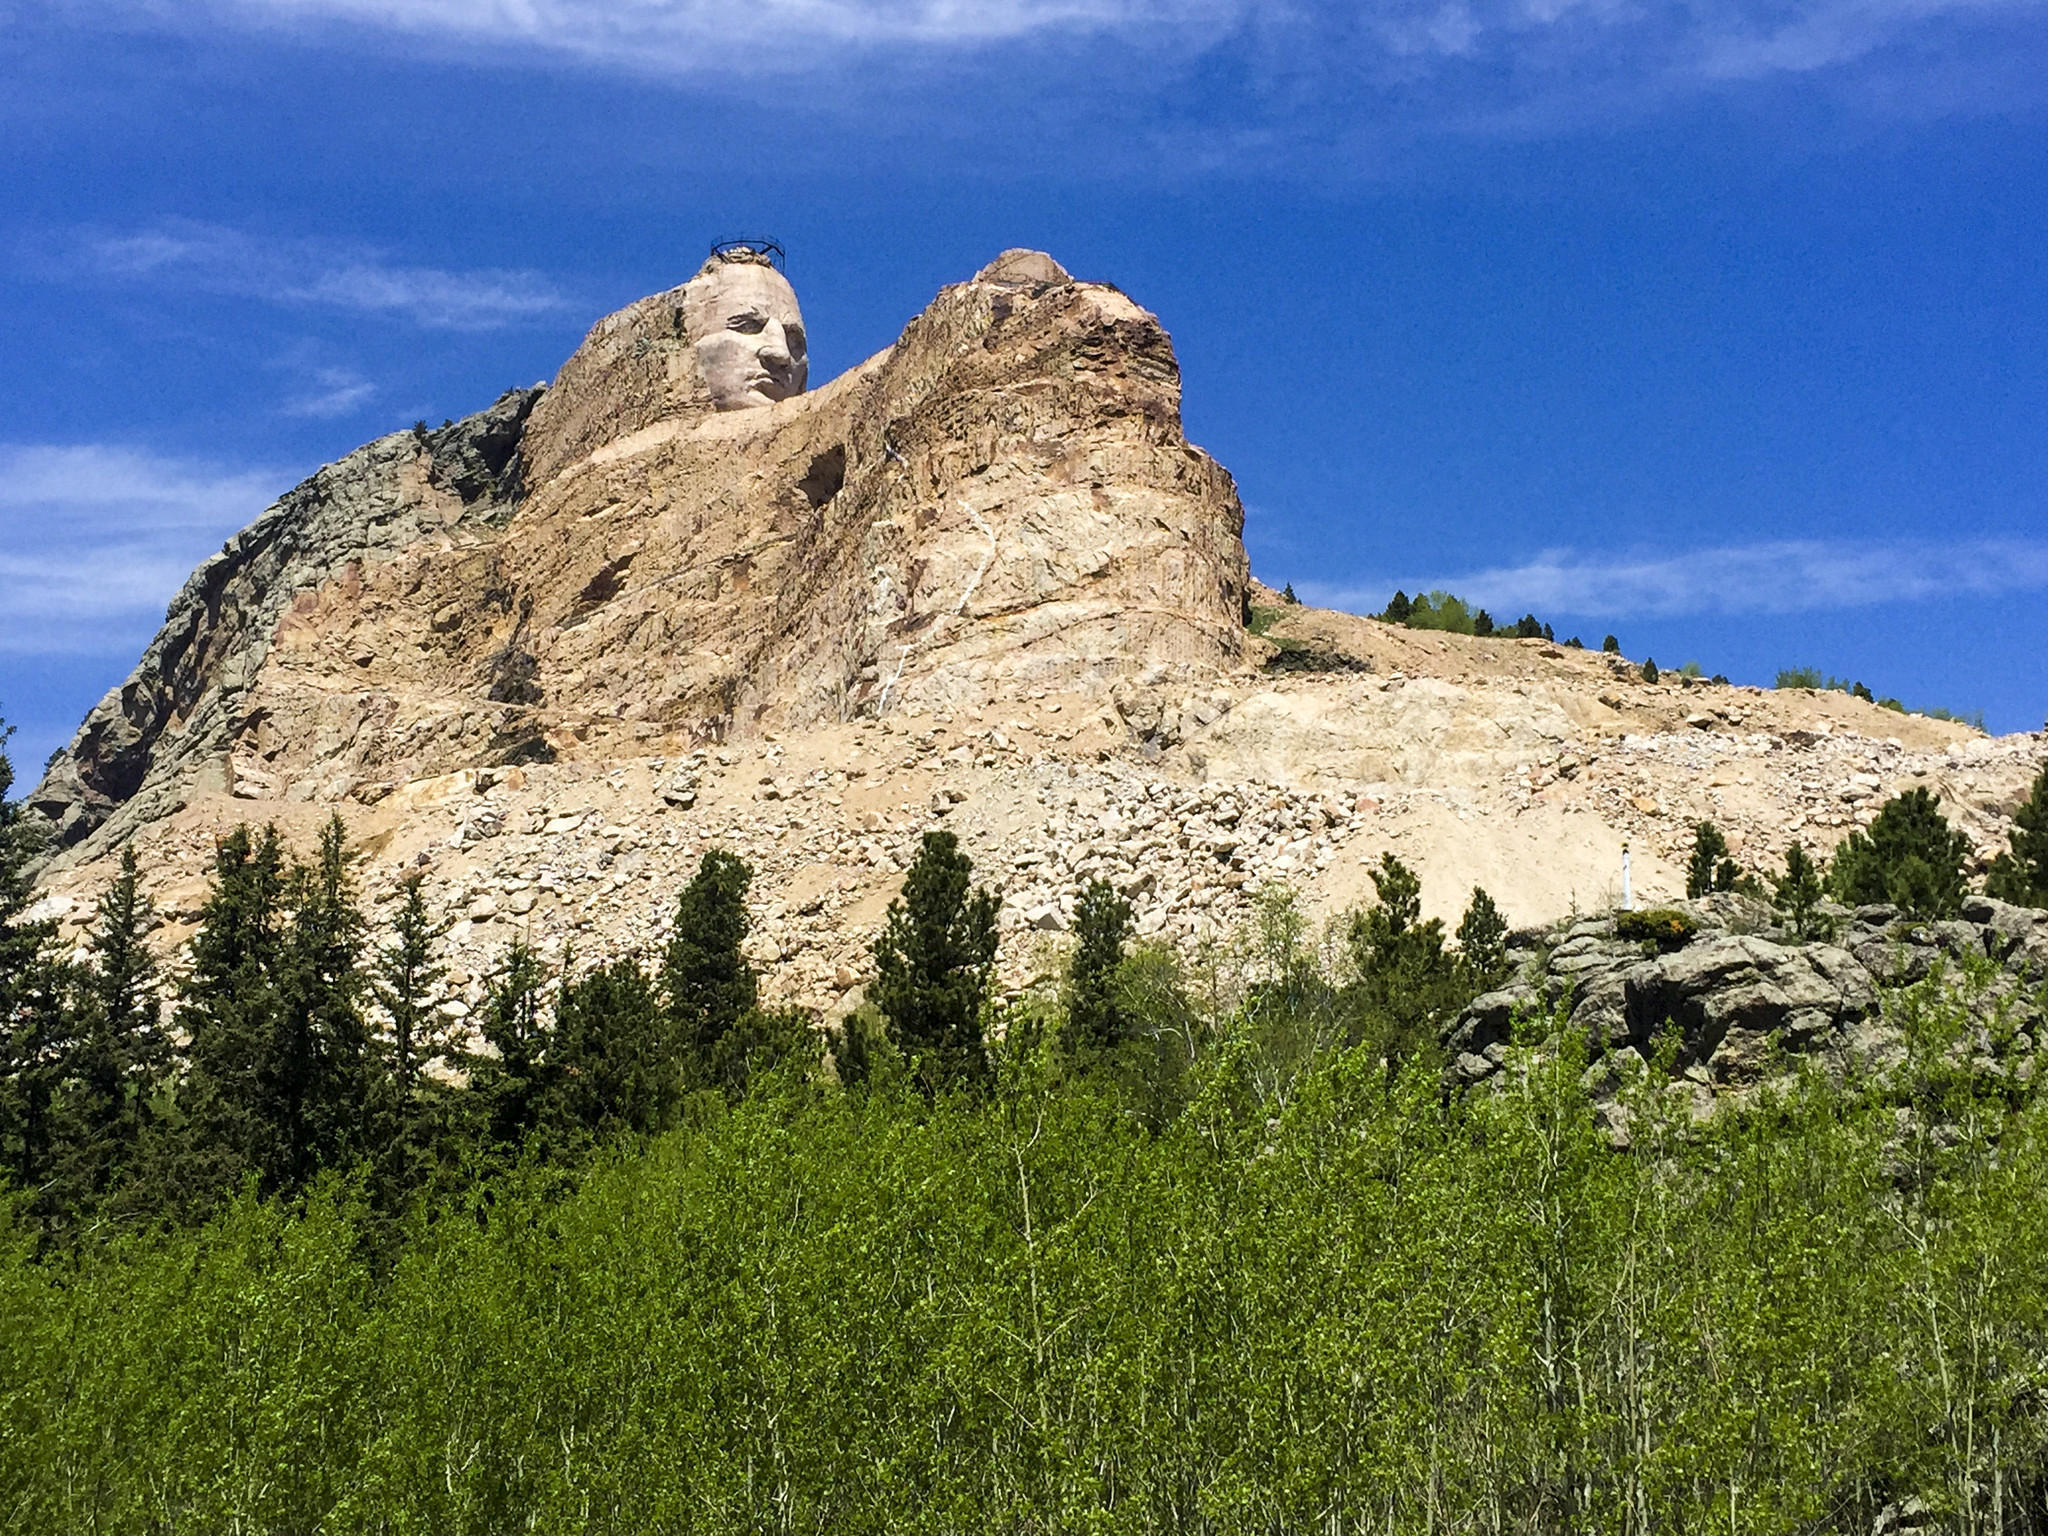 In The Black Hills, Face-to-face